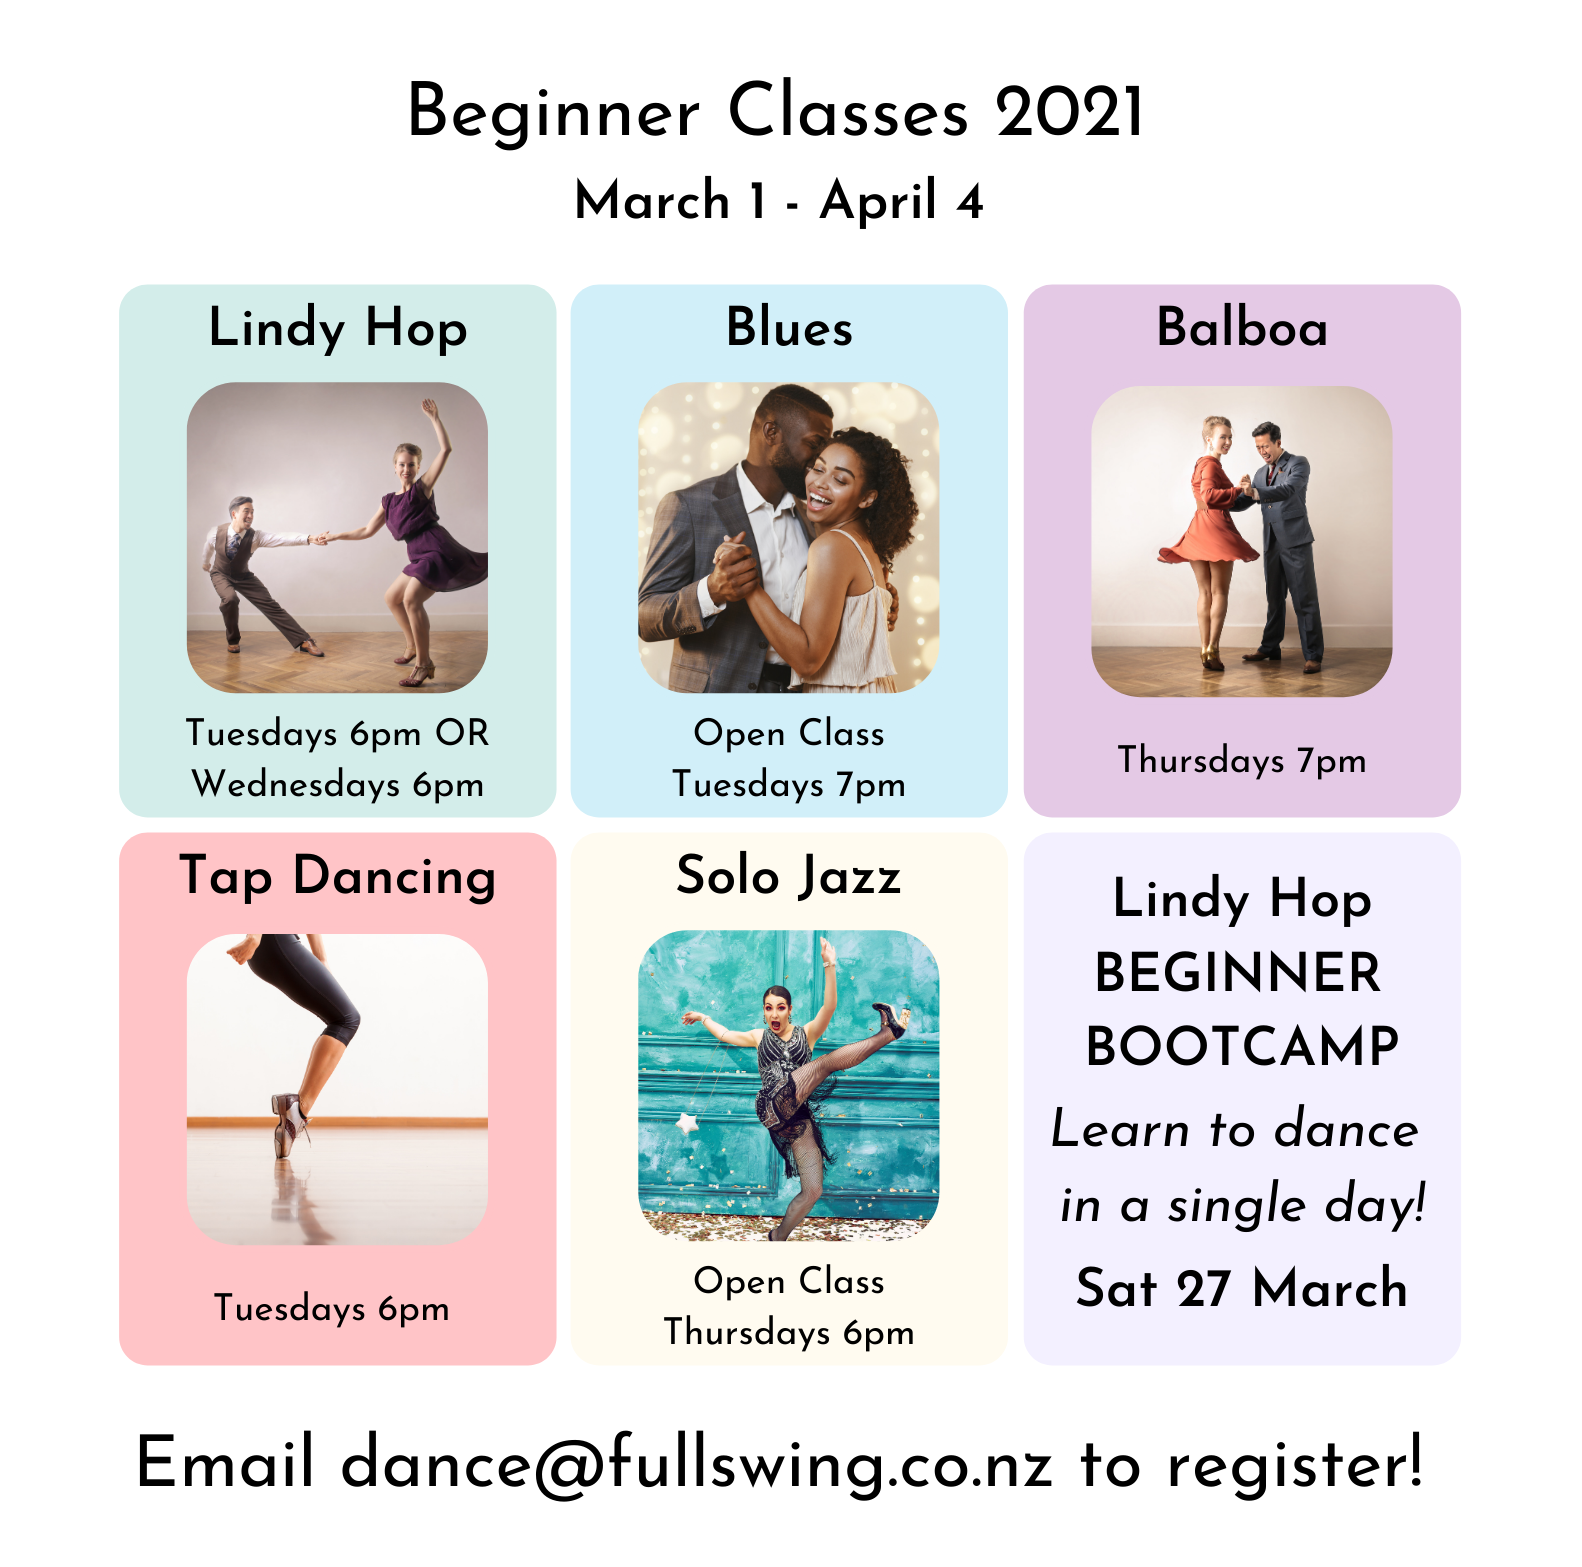 Lindy Hop Tuesdays 6pm or Wednesdays 6pm, Blues Open Class Tuesdays 6pm, Balboa Thursdays 7pm, Tap Dancing Tuesdays 6pm, Solo Jazz Open Class Thursdays 6pm, Lindy Hop Beginner Bootcamp Learn to dance in a single day Saturday 27 March